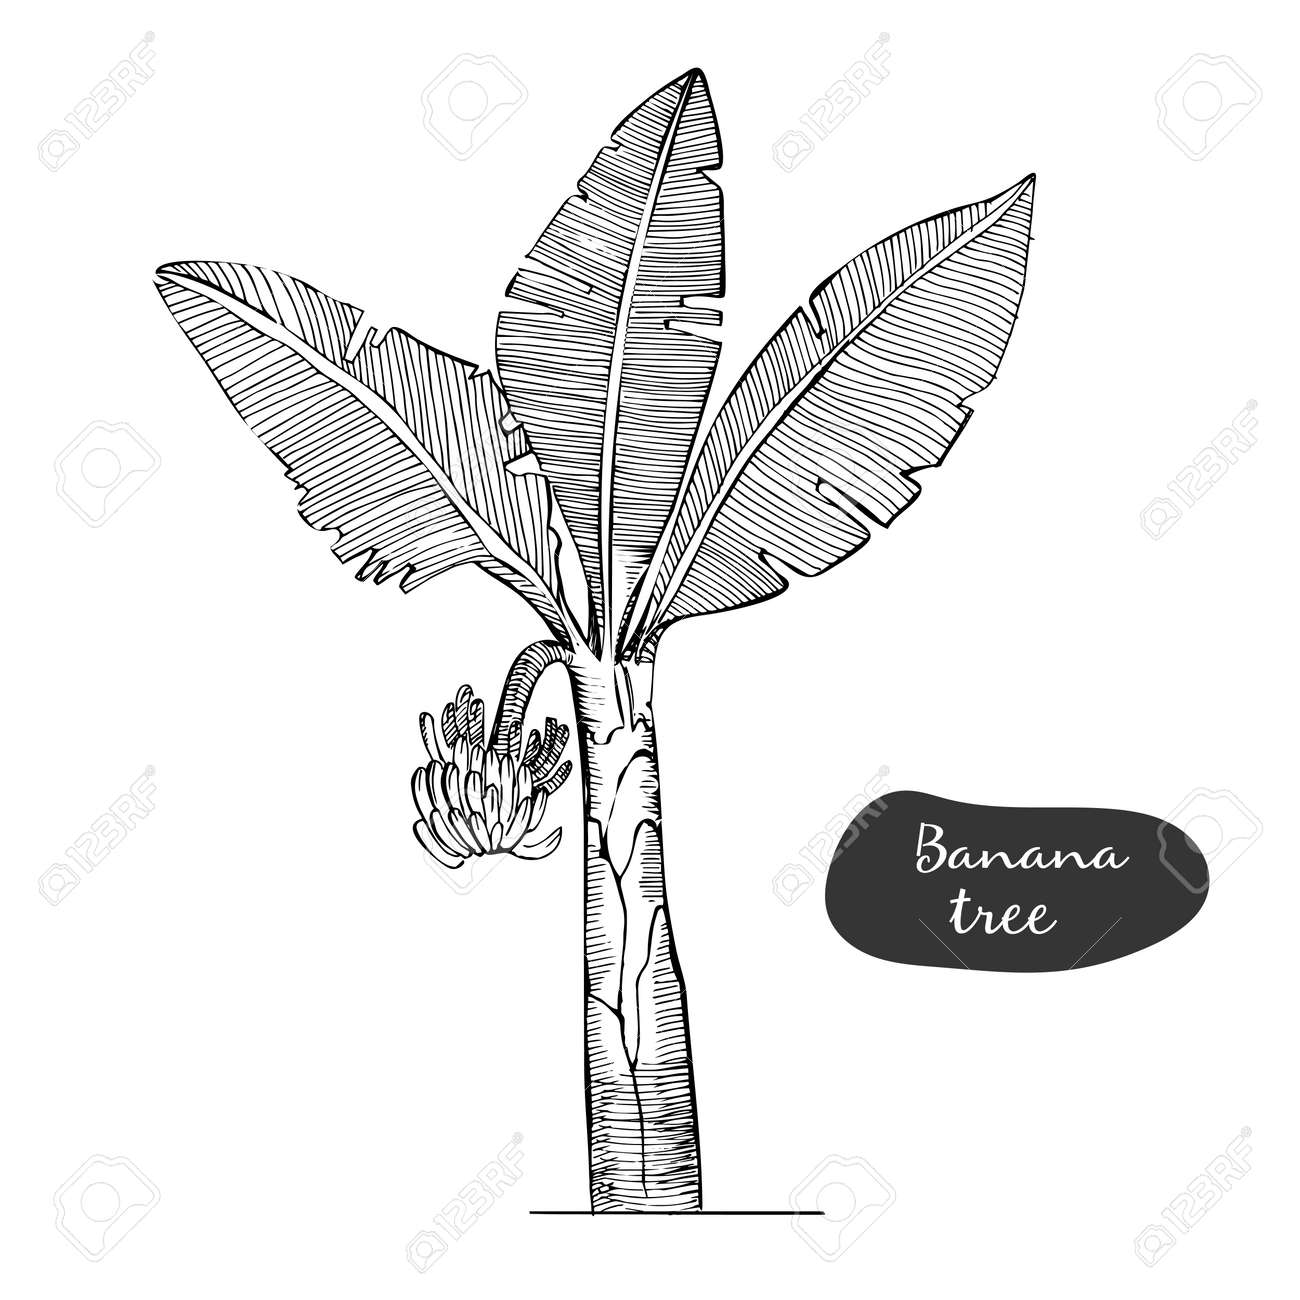 Banana Tree Sketch Illustration Detailed Botanical Style Sketch Royalty Free Cliparts Vectors And Stock Illustration Image 124943250